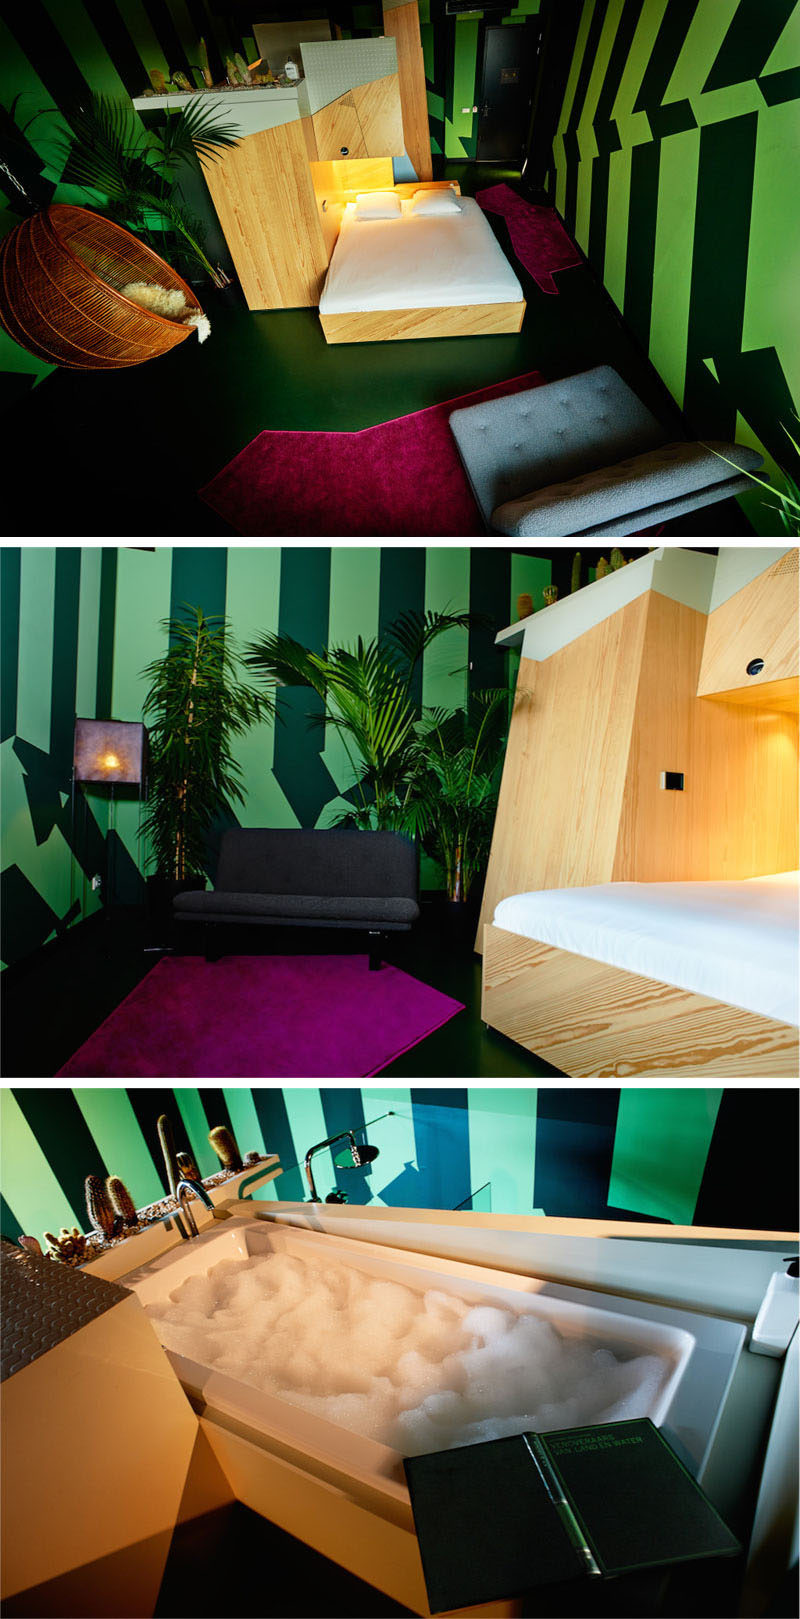 9 Designers Created 9 Rooms At This Hotel In Amsterdam